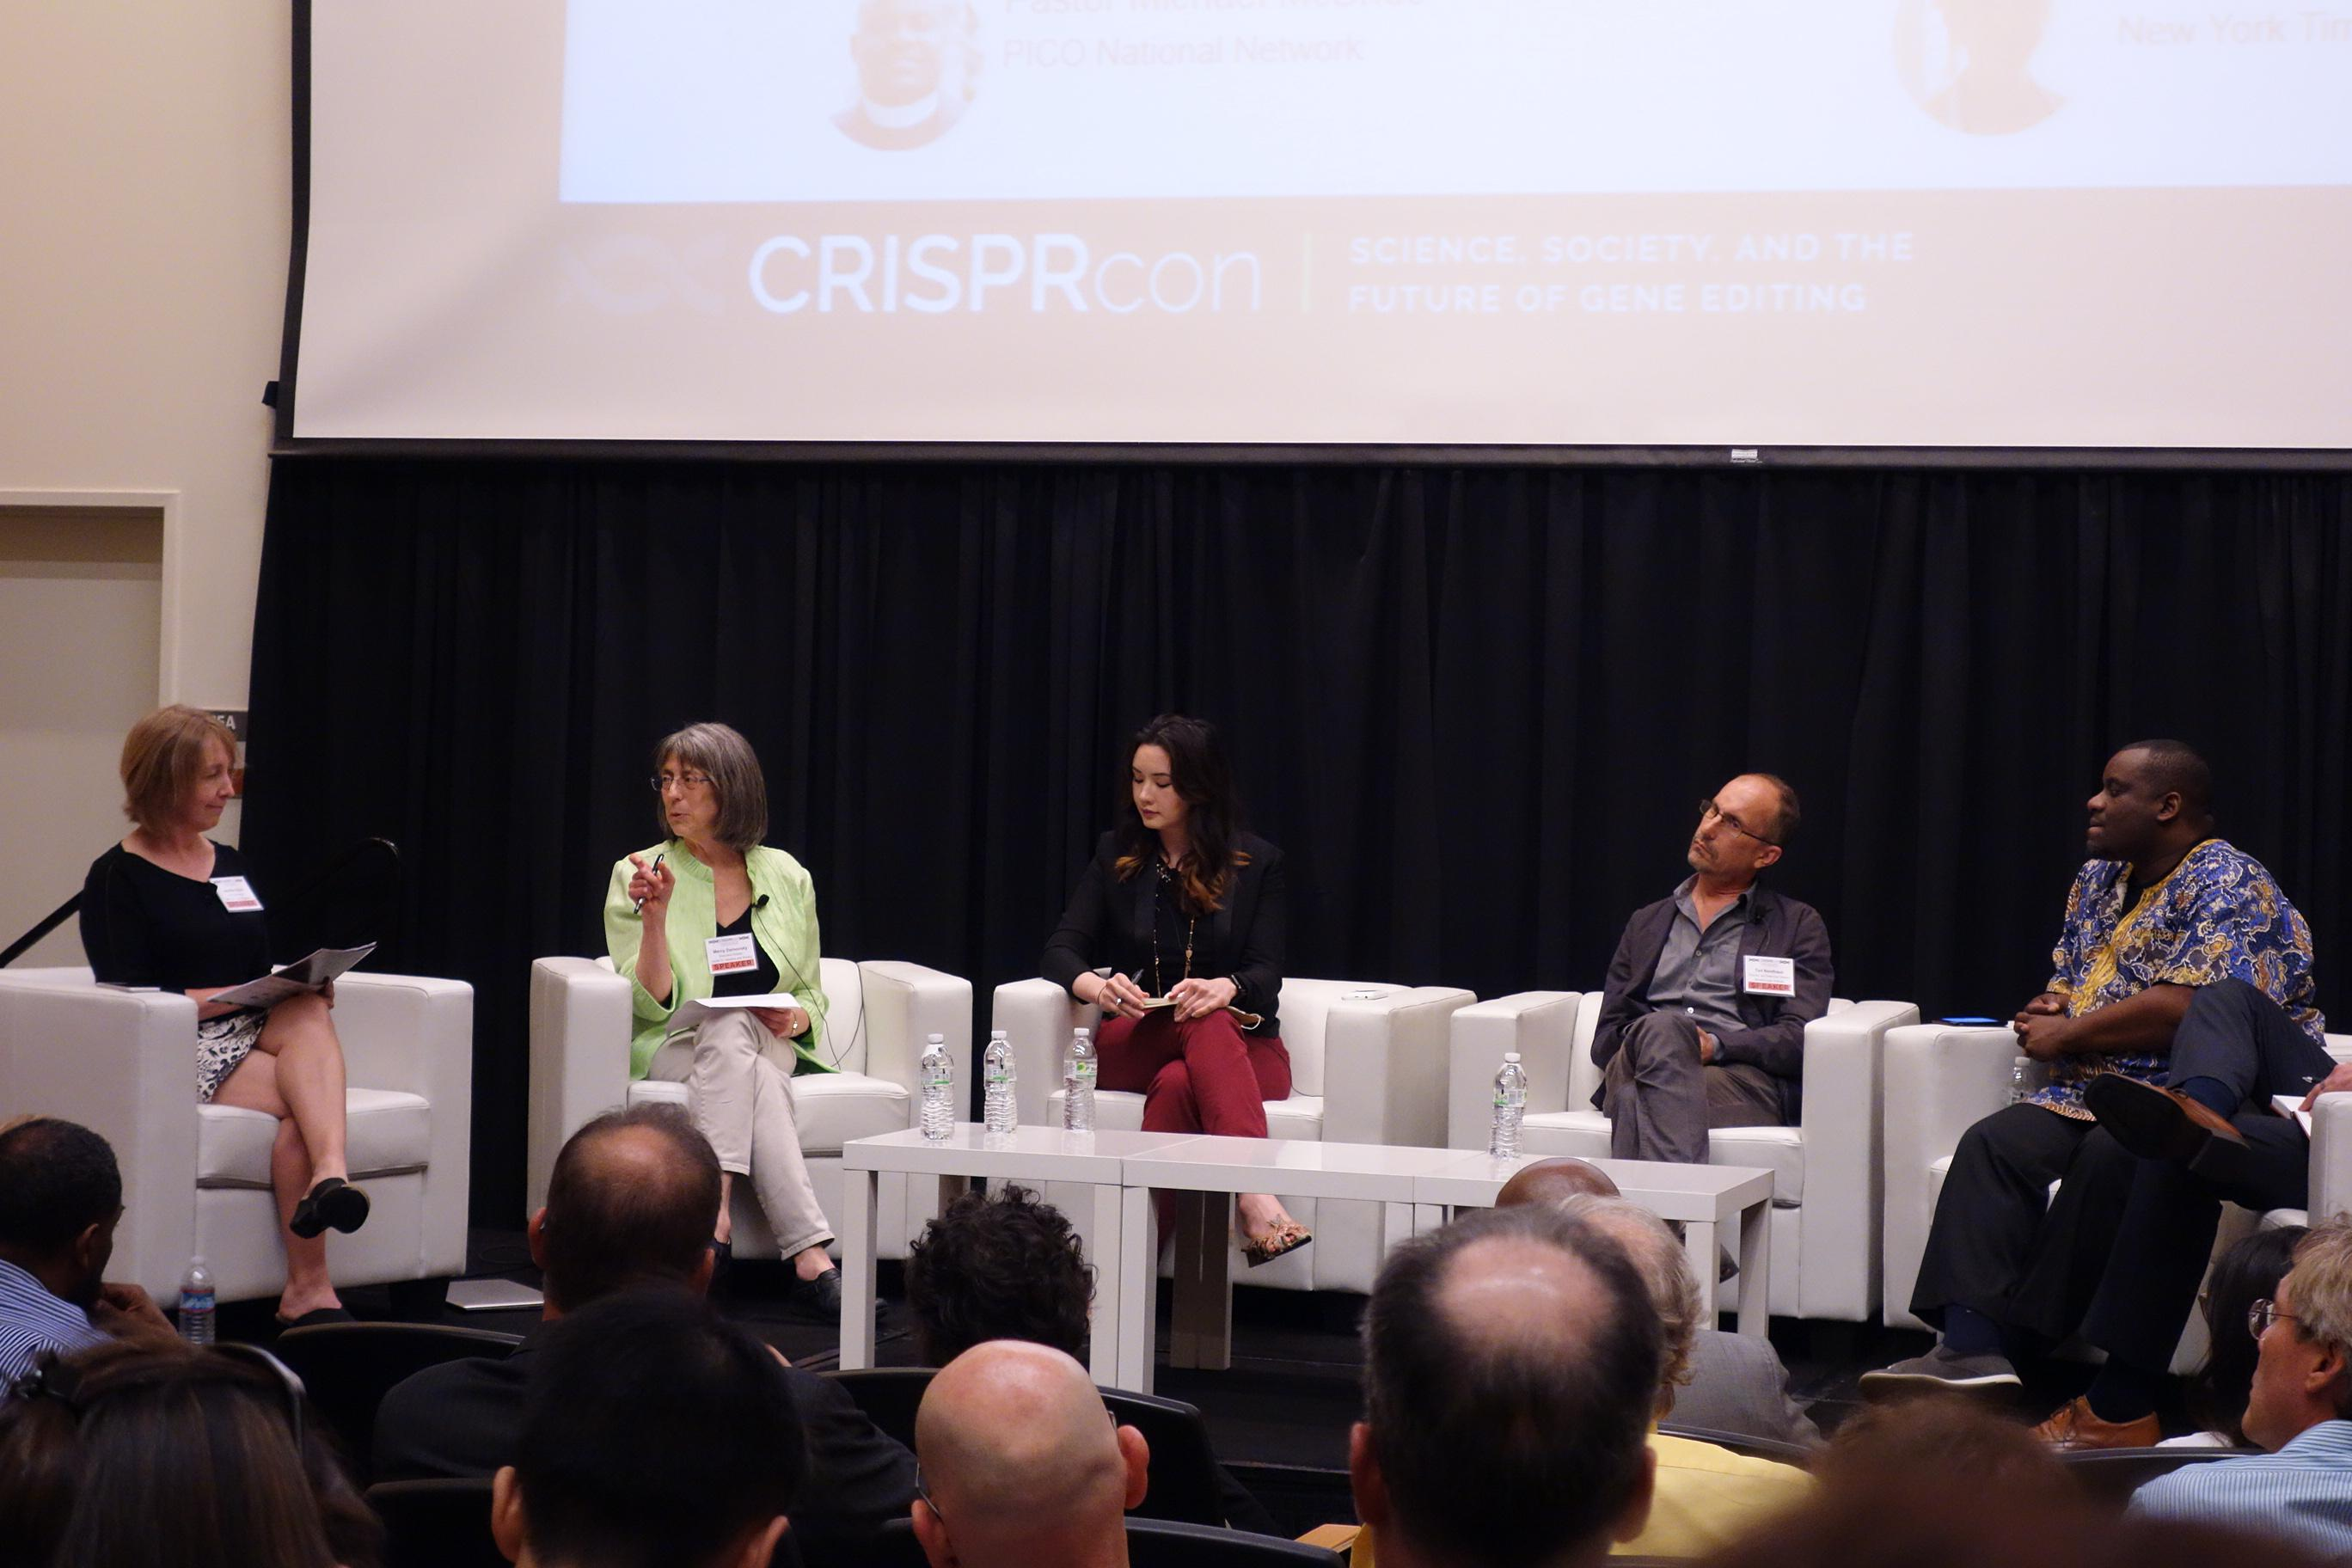 Marcy Darnovsky speaks among  panel at CRISPRcon